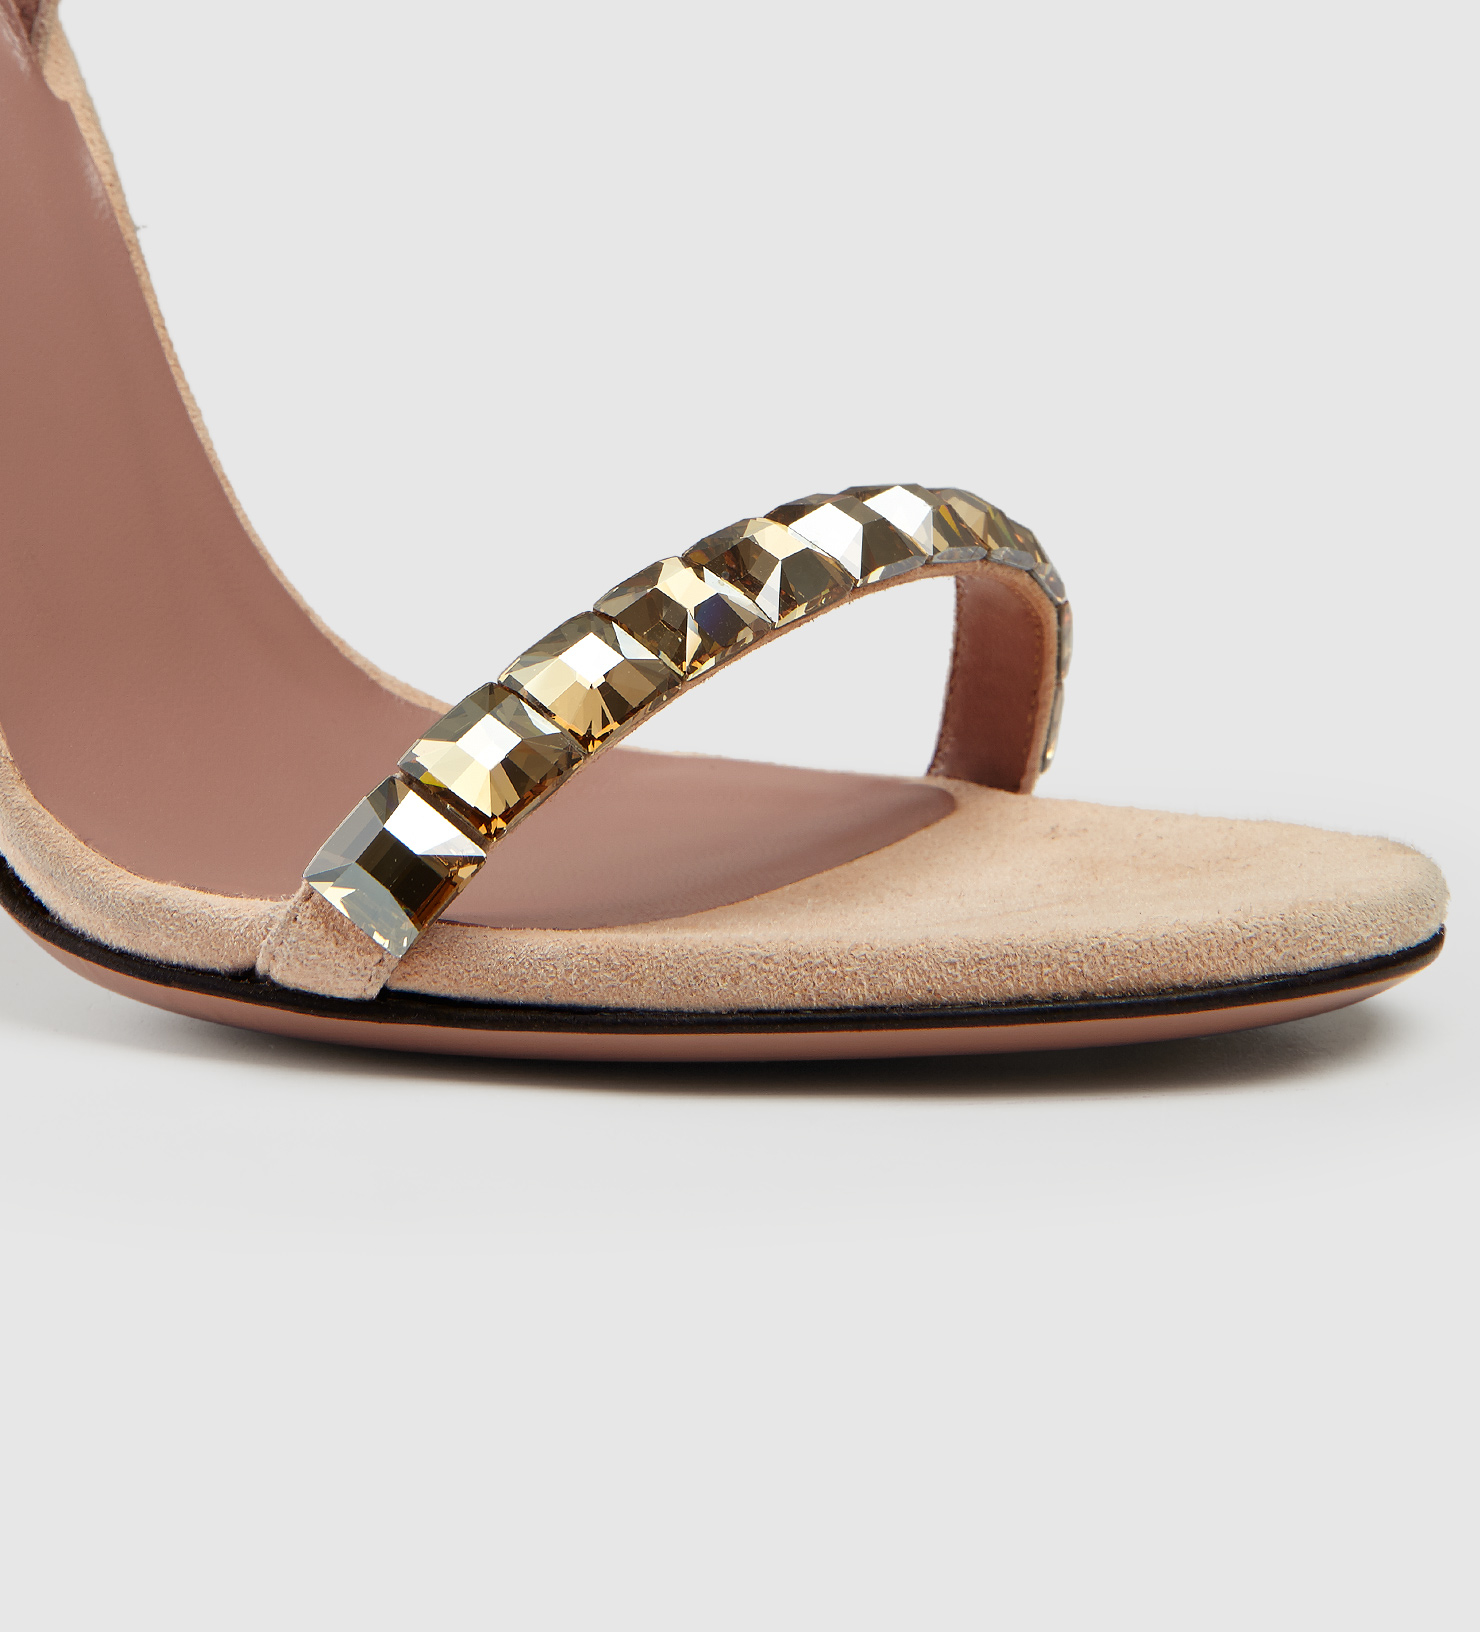 cb1925f9304 Lyst - Gucci Mallory Crystal Embellished Suede Sandals in Brown